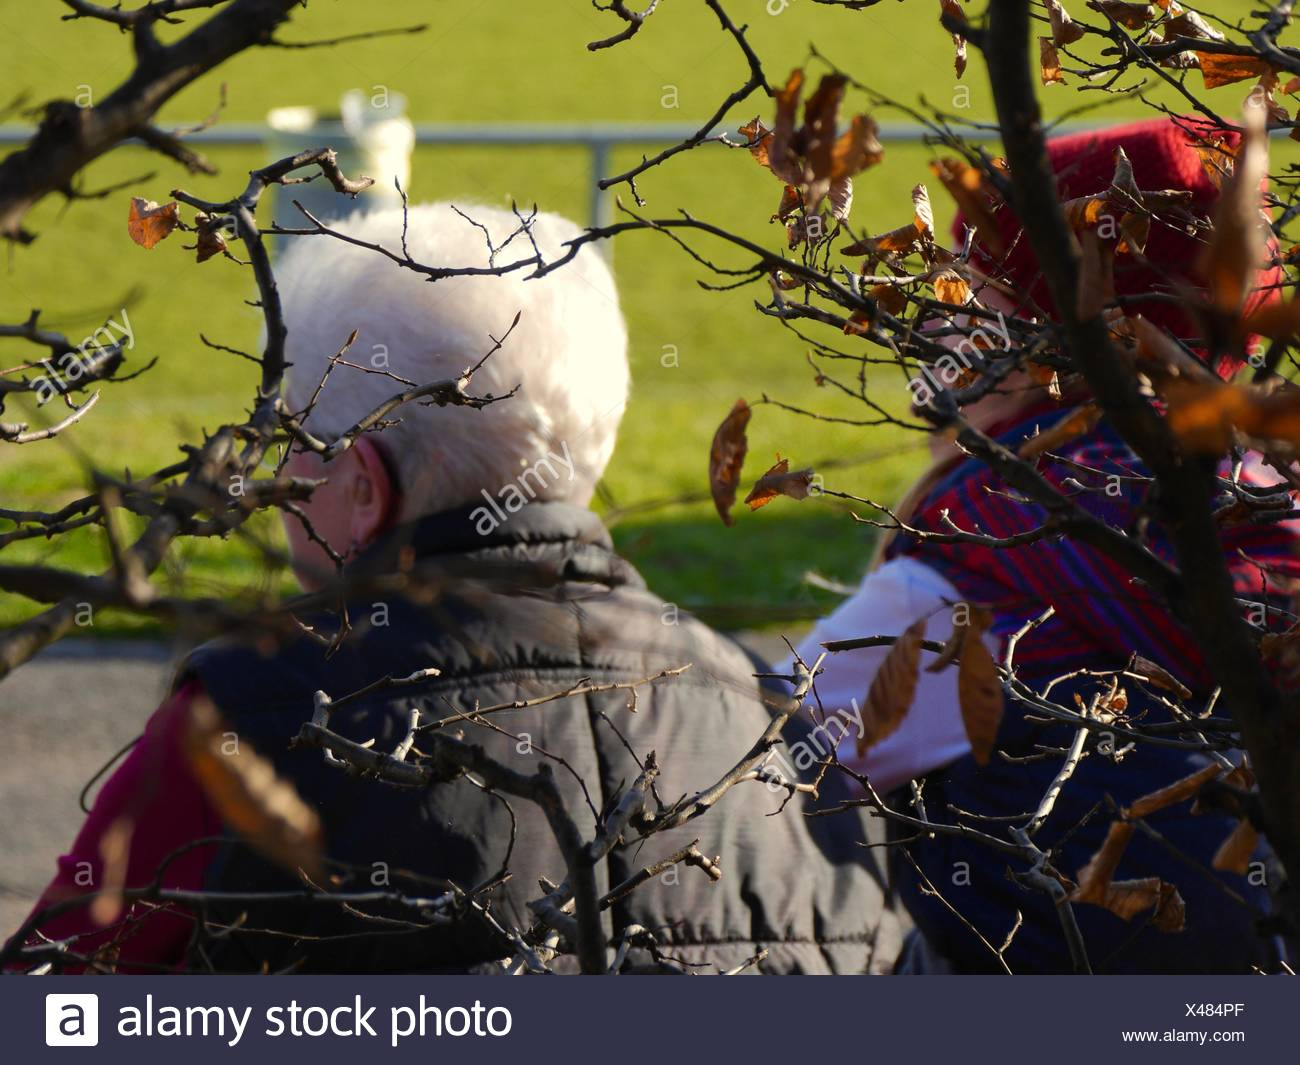 Rea View Of People Sitting At Park By Tree - Stock Image